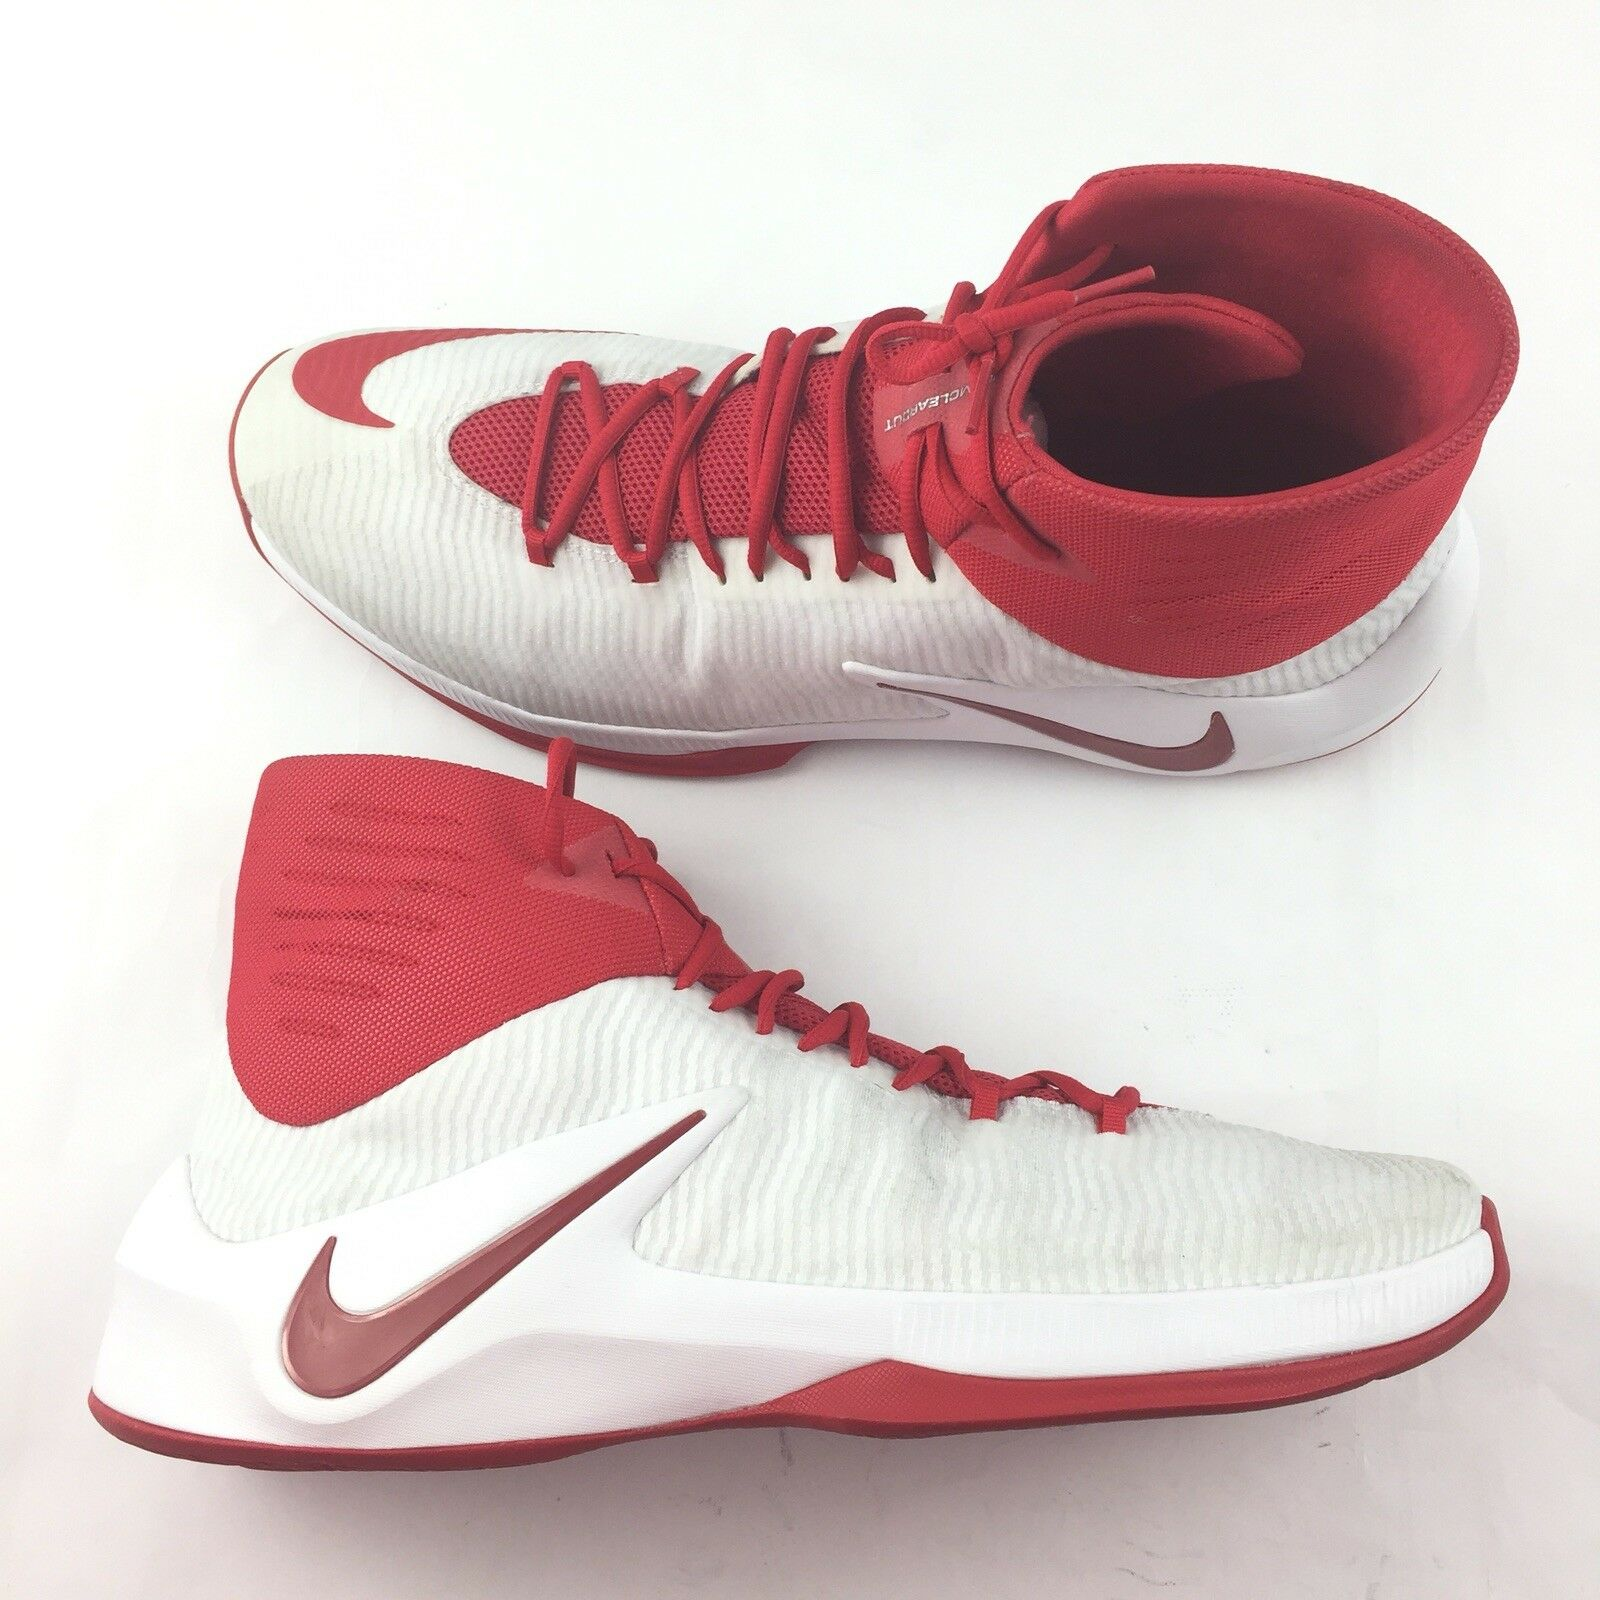 Nike Zoom Clear Out High Top Size 18 Basketball shoes Red White 856486-161 New